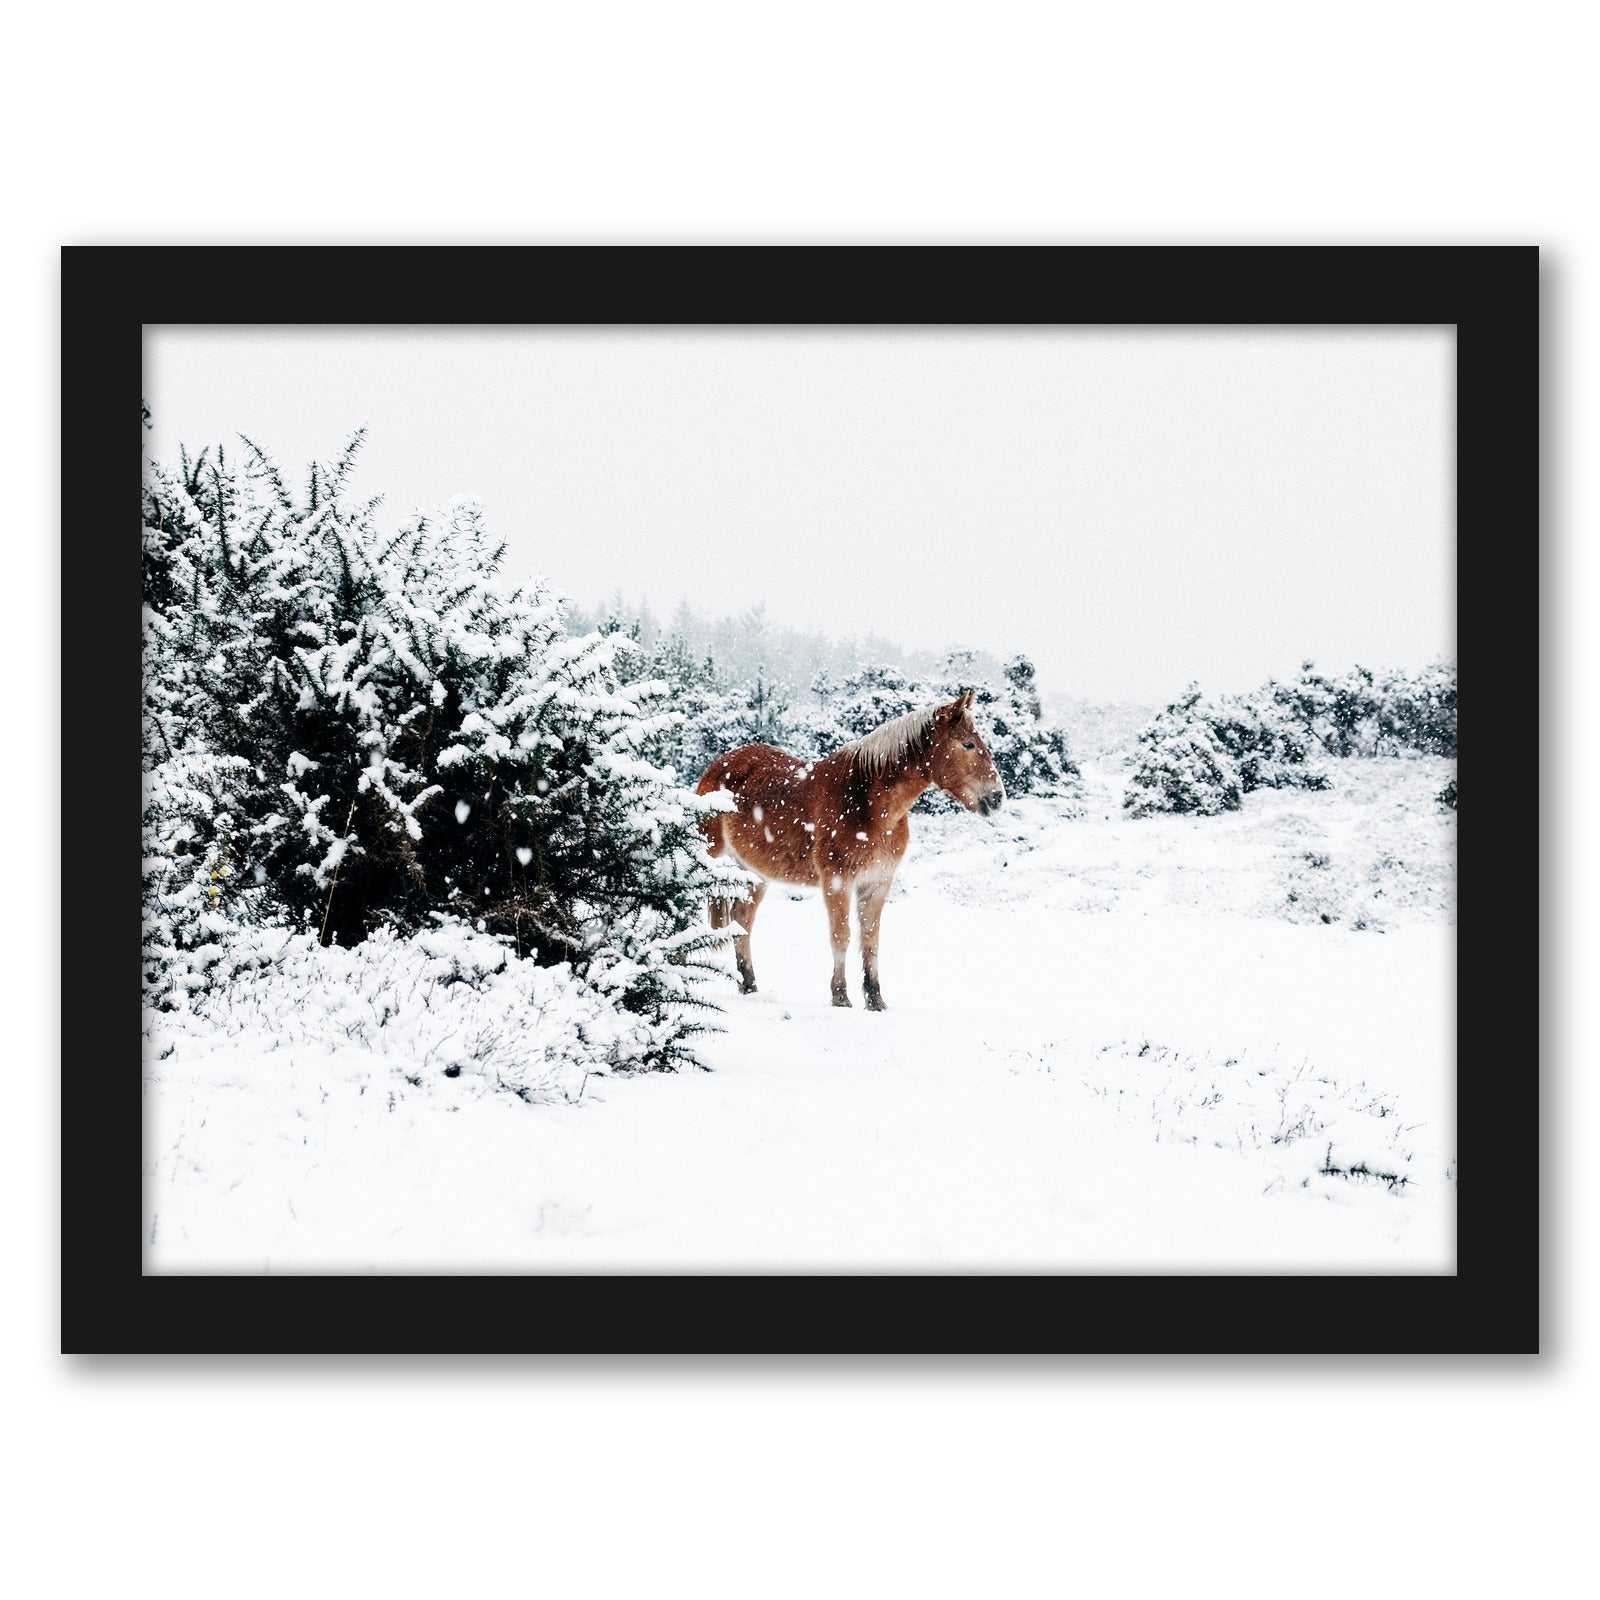 Horse In Snow by Tanya Shumkina - Black Framed Print - Wall Art - Americanflat